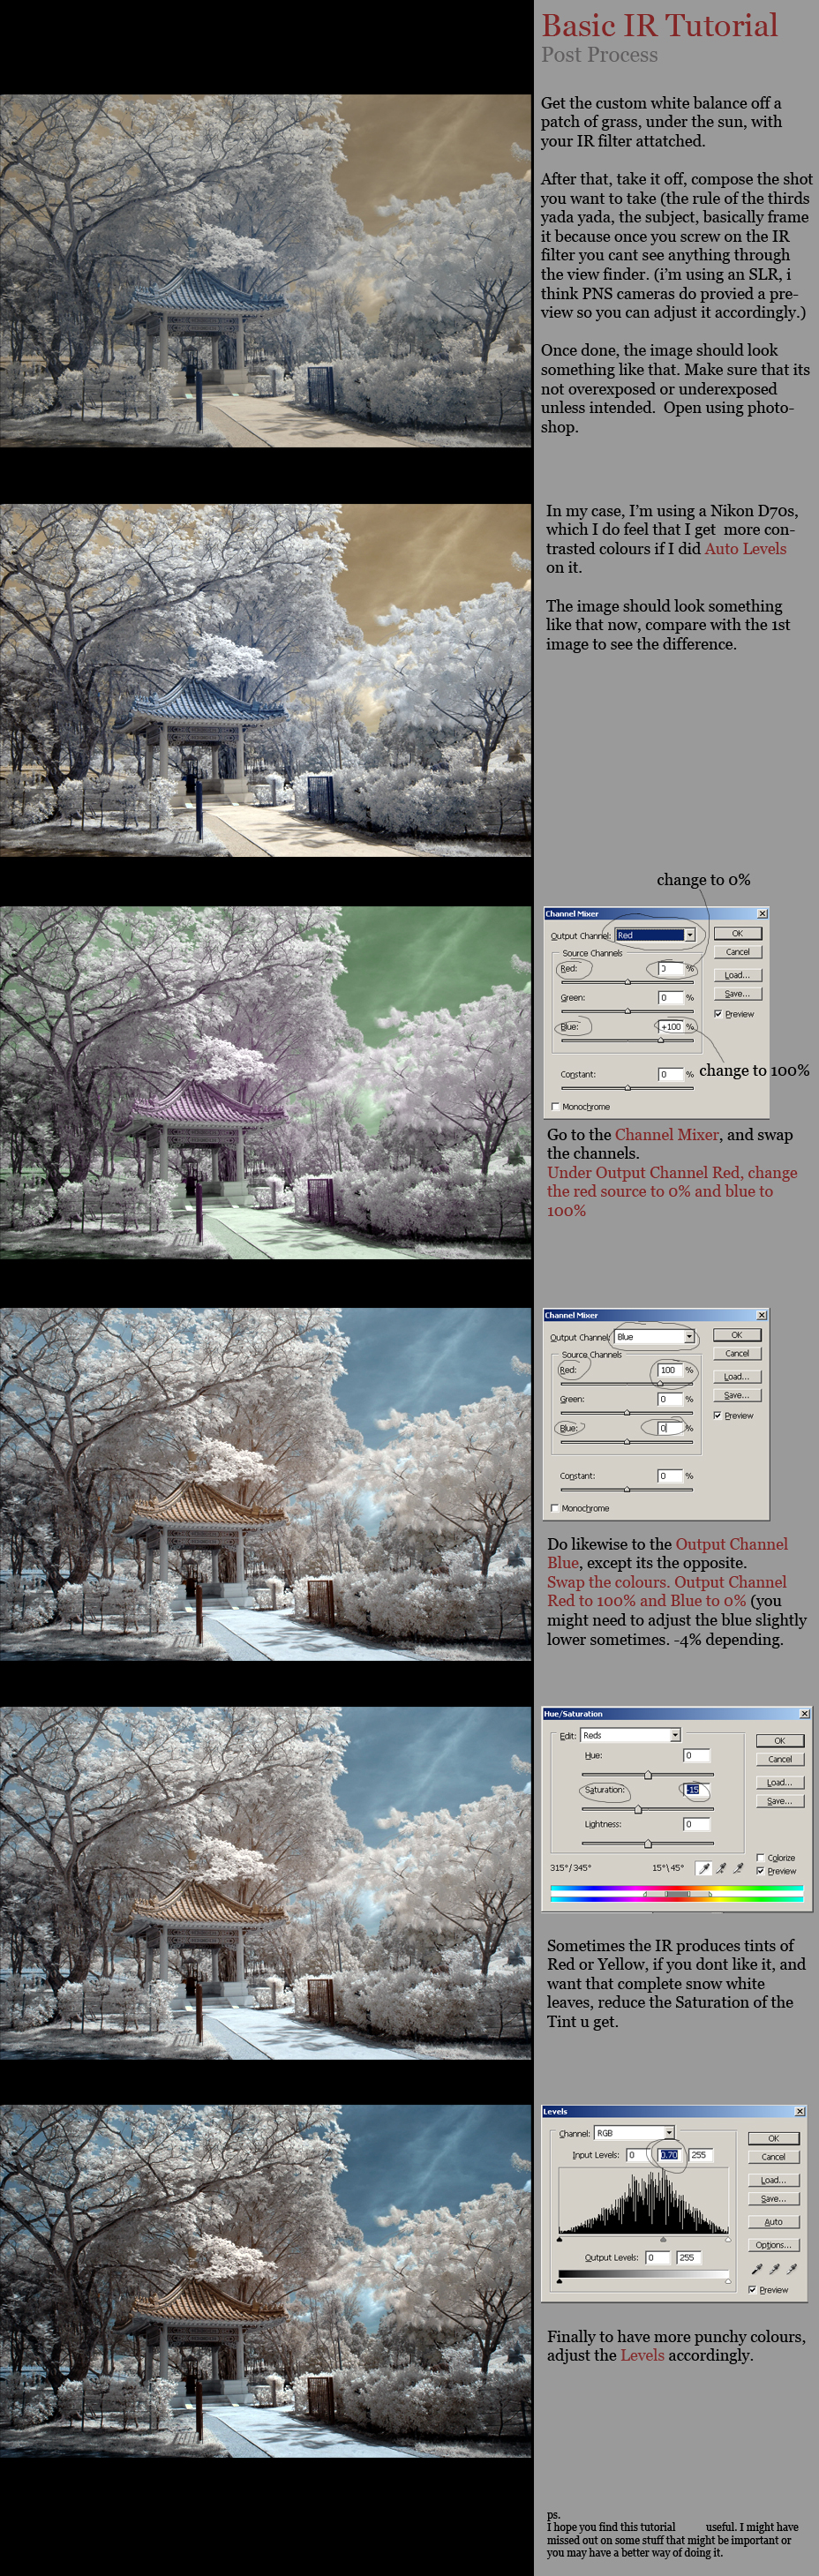 Basic IR Post Process by log1t3ch